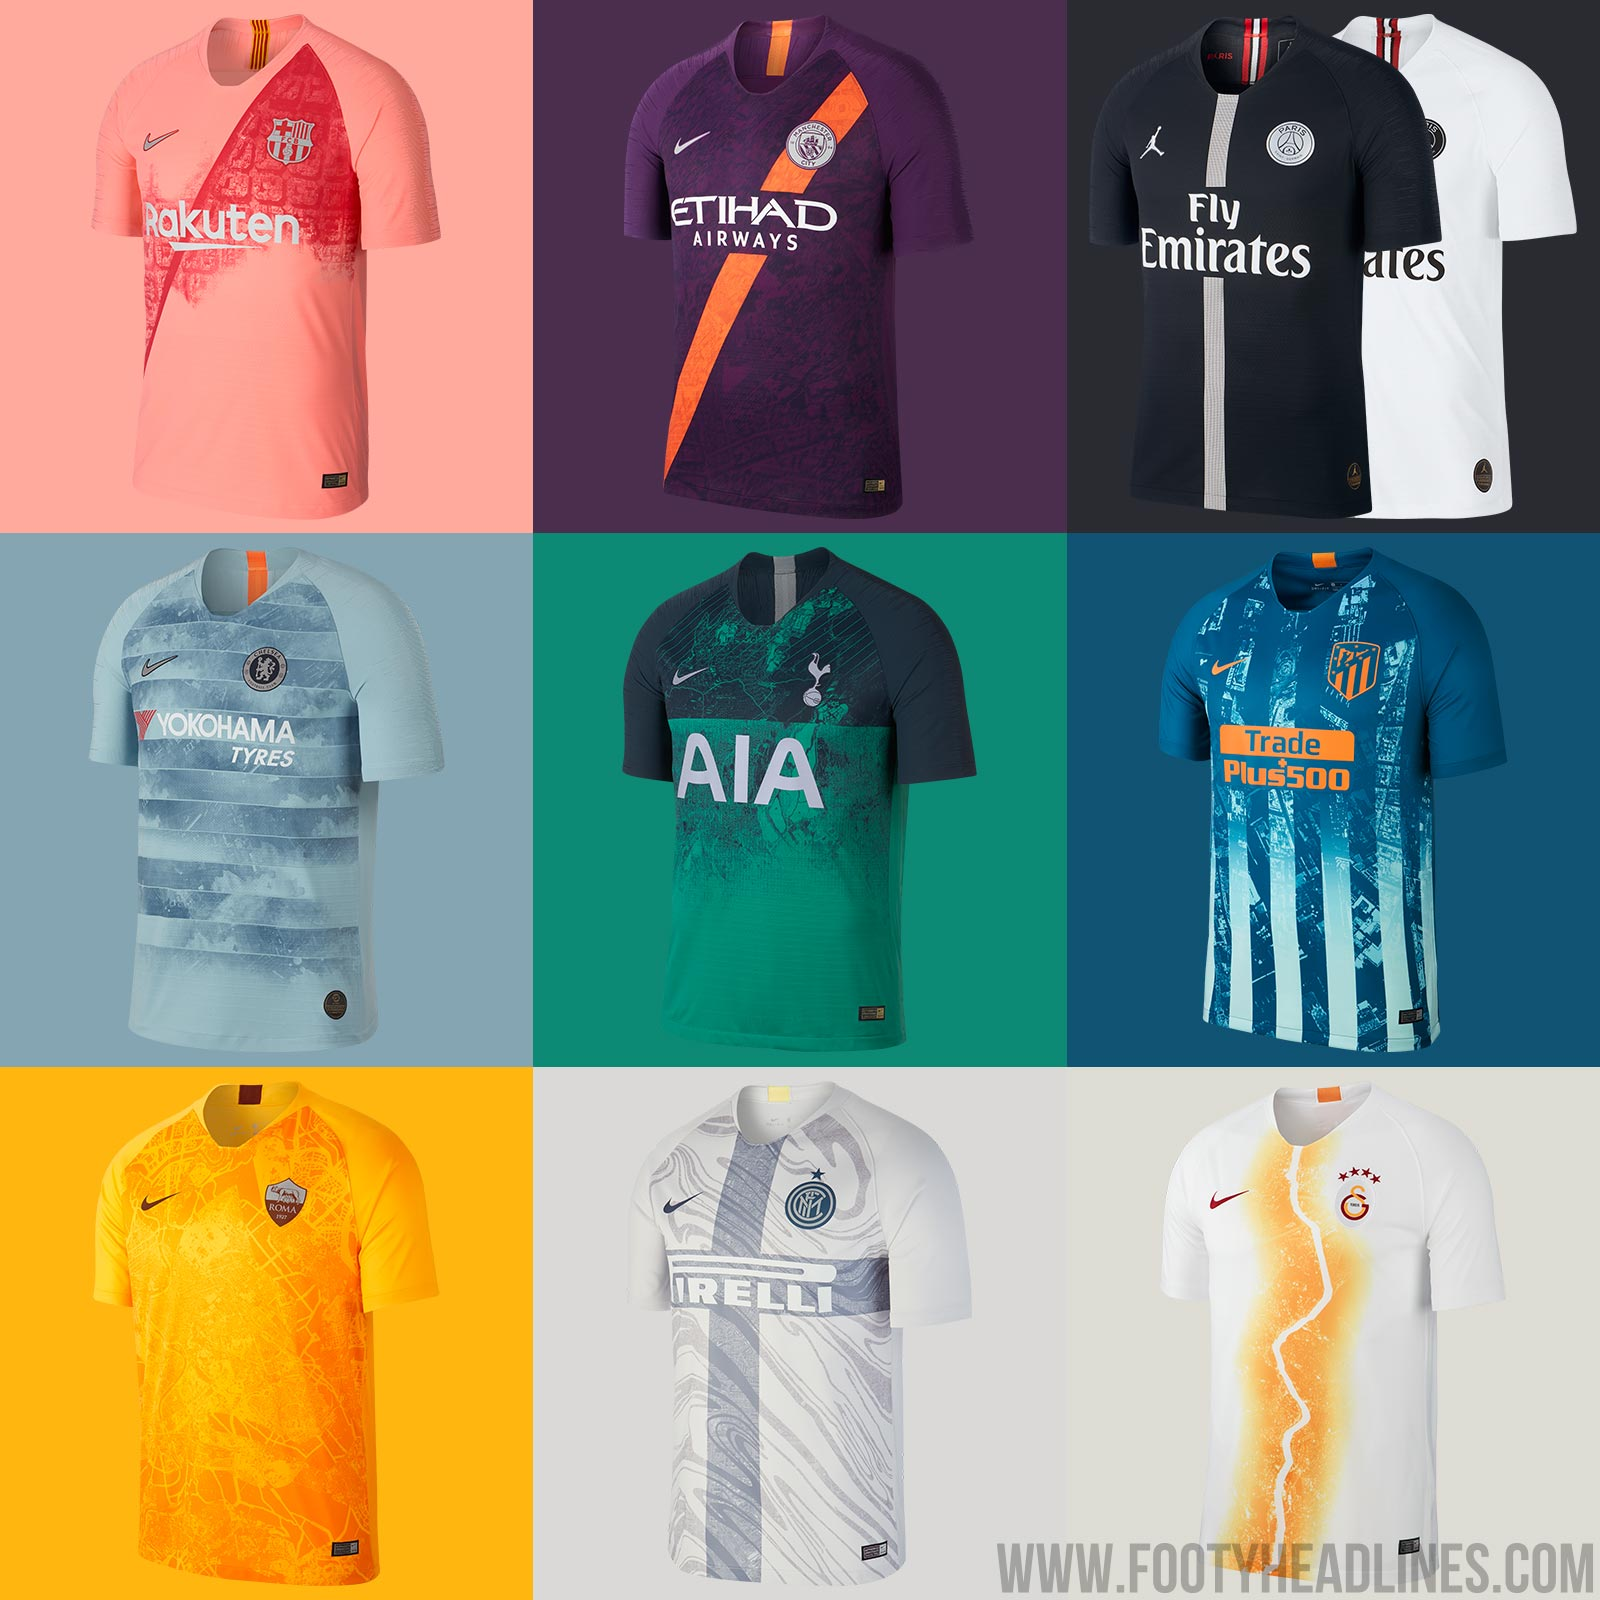 d41e799397a All Nike 2018-2019 third kits feature a bespoke graphic design  representative for the each team and their city, e..g. Galatasaray's kit  features a Bosporus ...